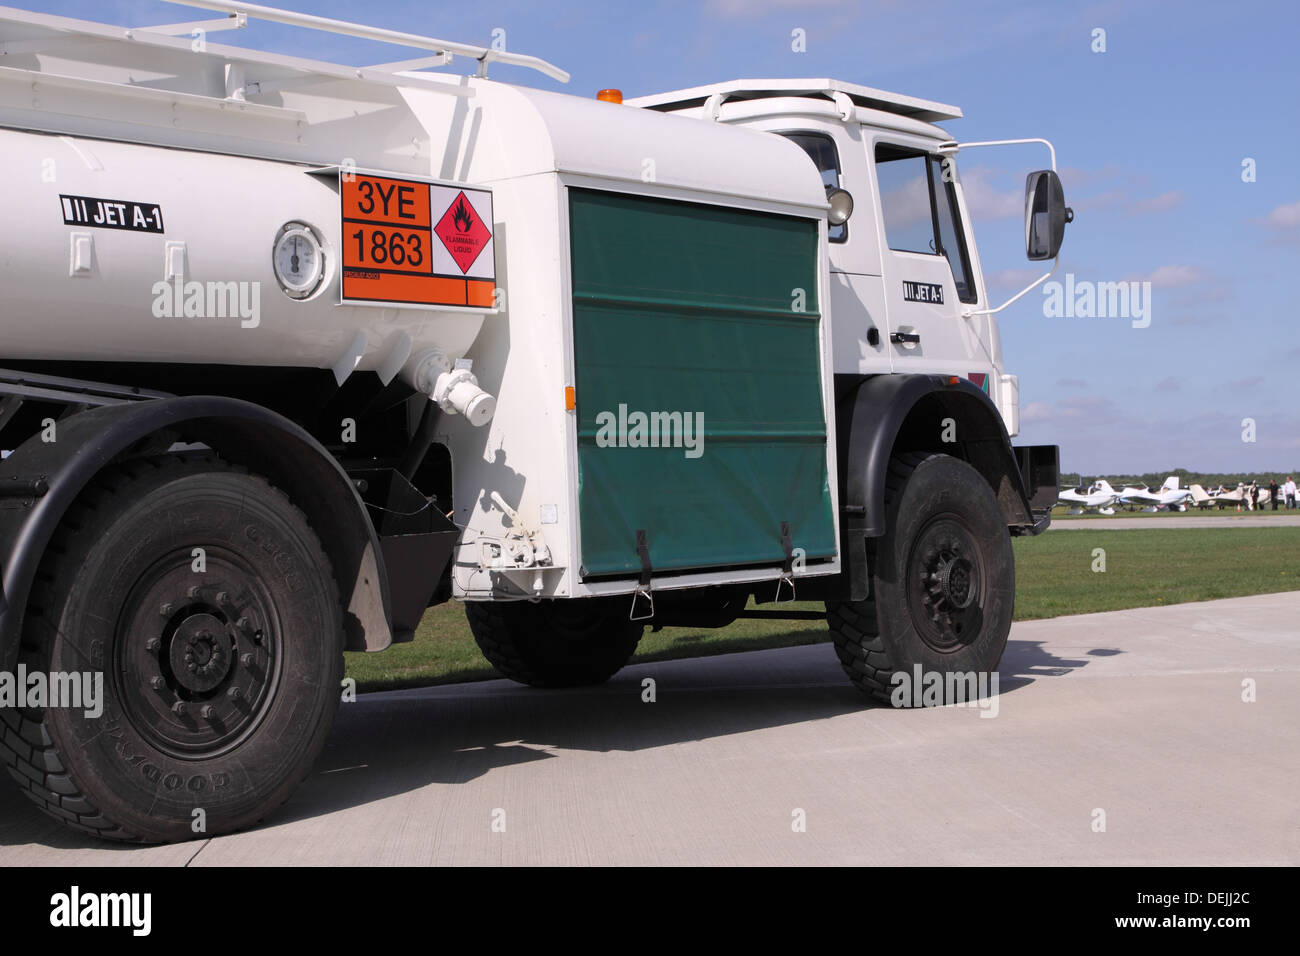 Airport fuel truck bowser vehicle with JET A-1 aviation fuel with HAZCHEM sign - Stock Image